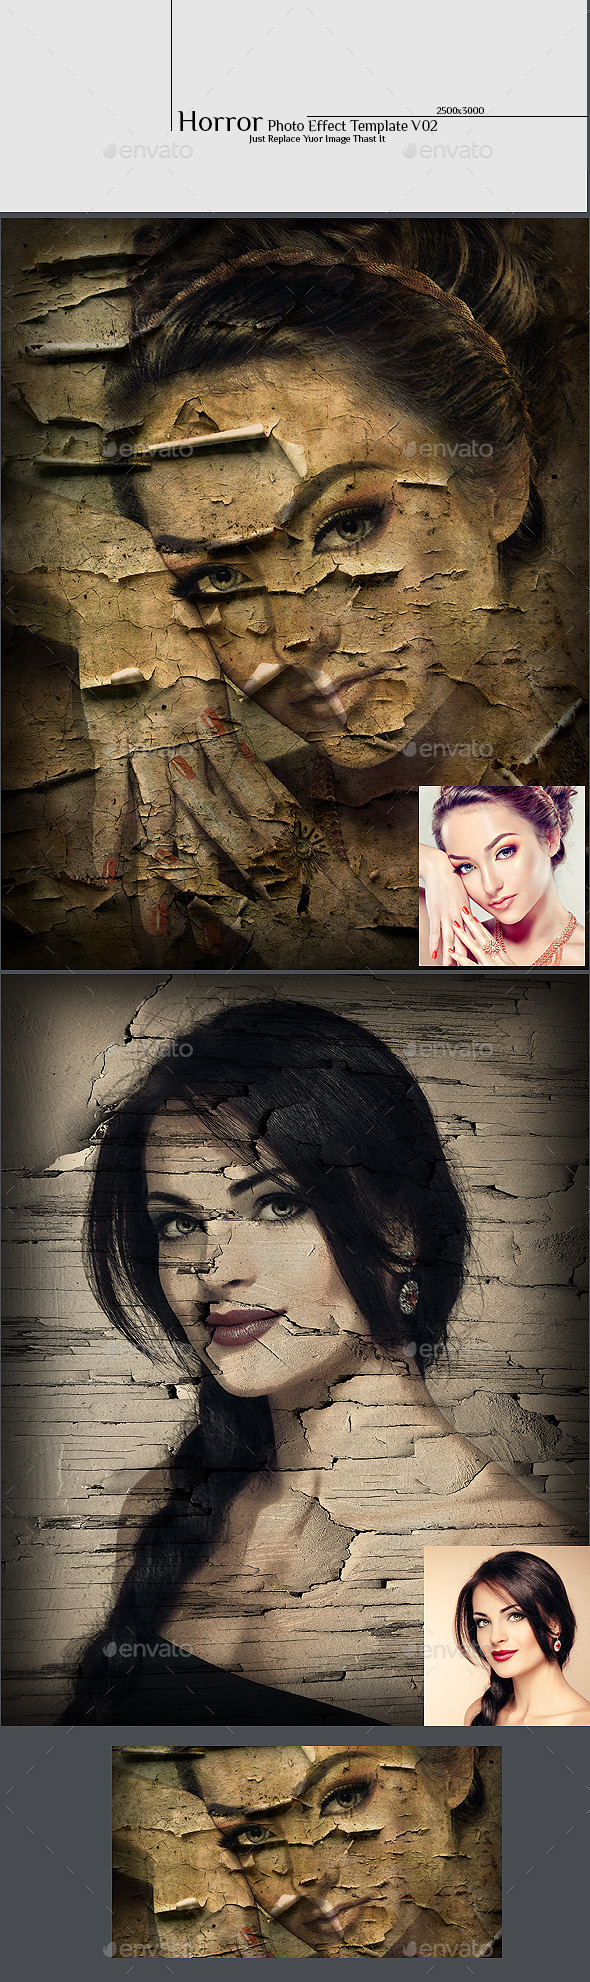 Horror Photo Effect Template v02 - Photo Templates Graphics